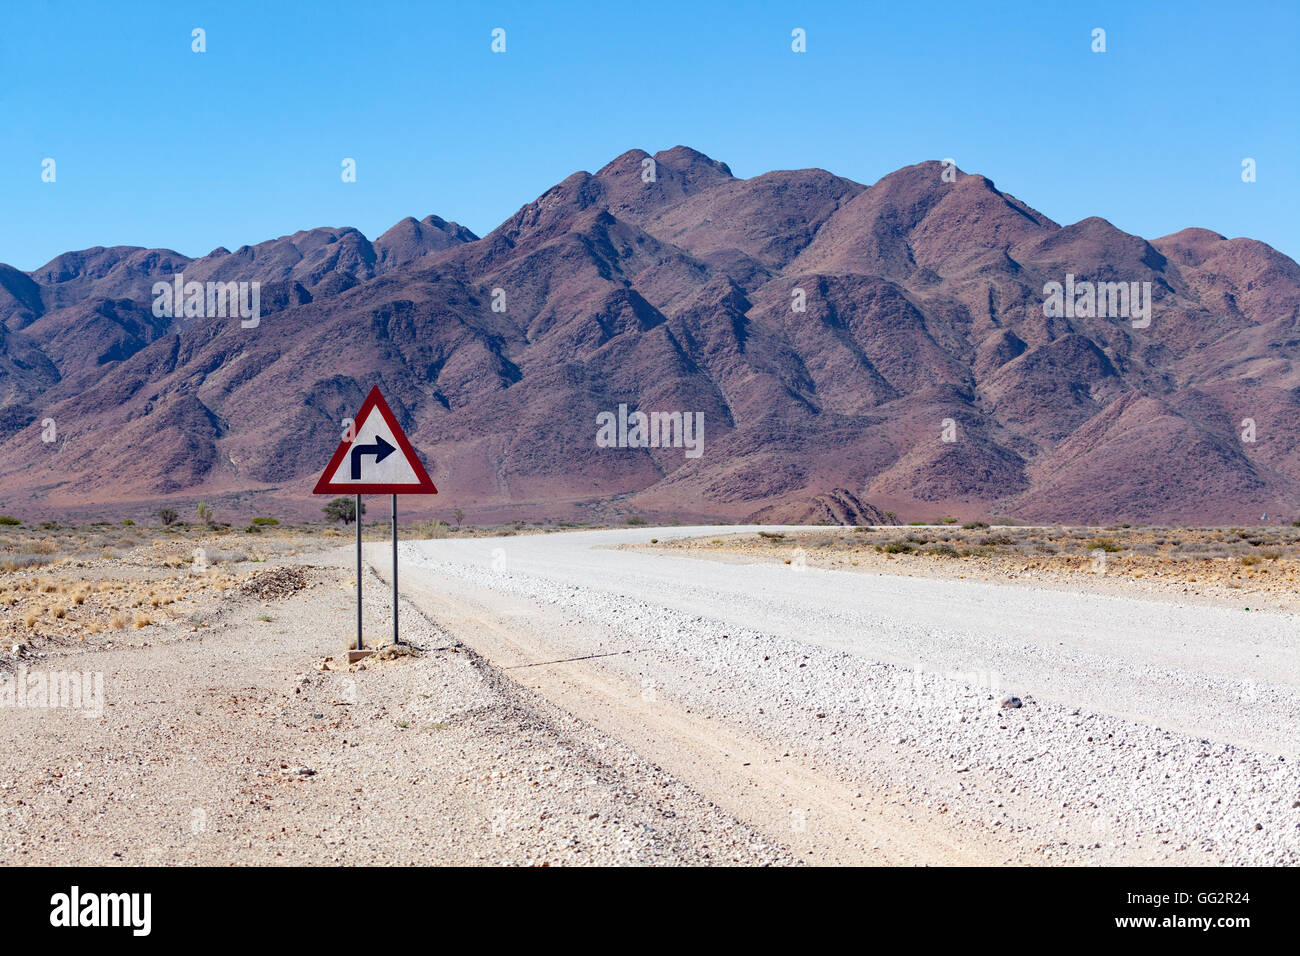 Namibia Right turn on a road in front of mountains. - Stock Image